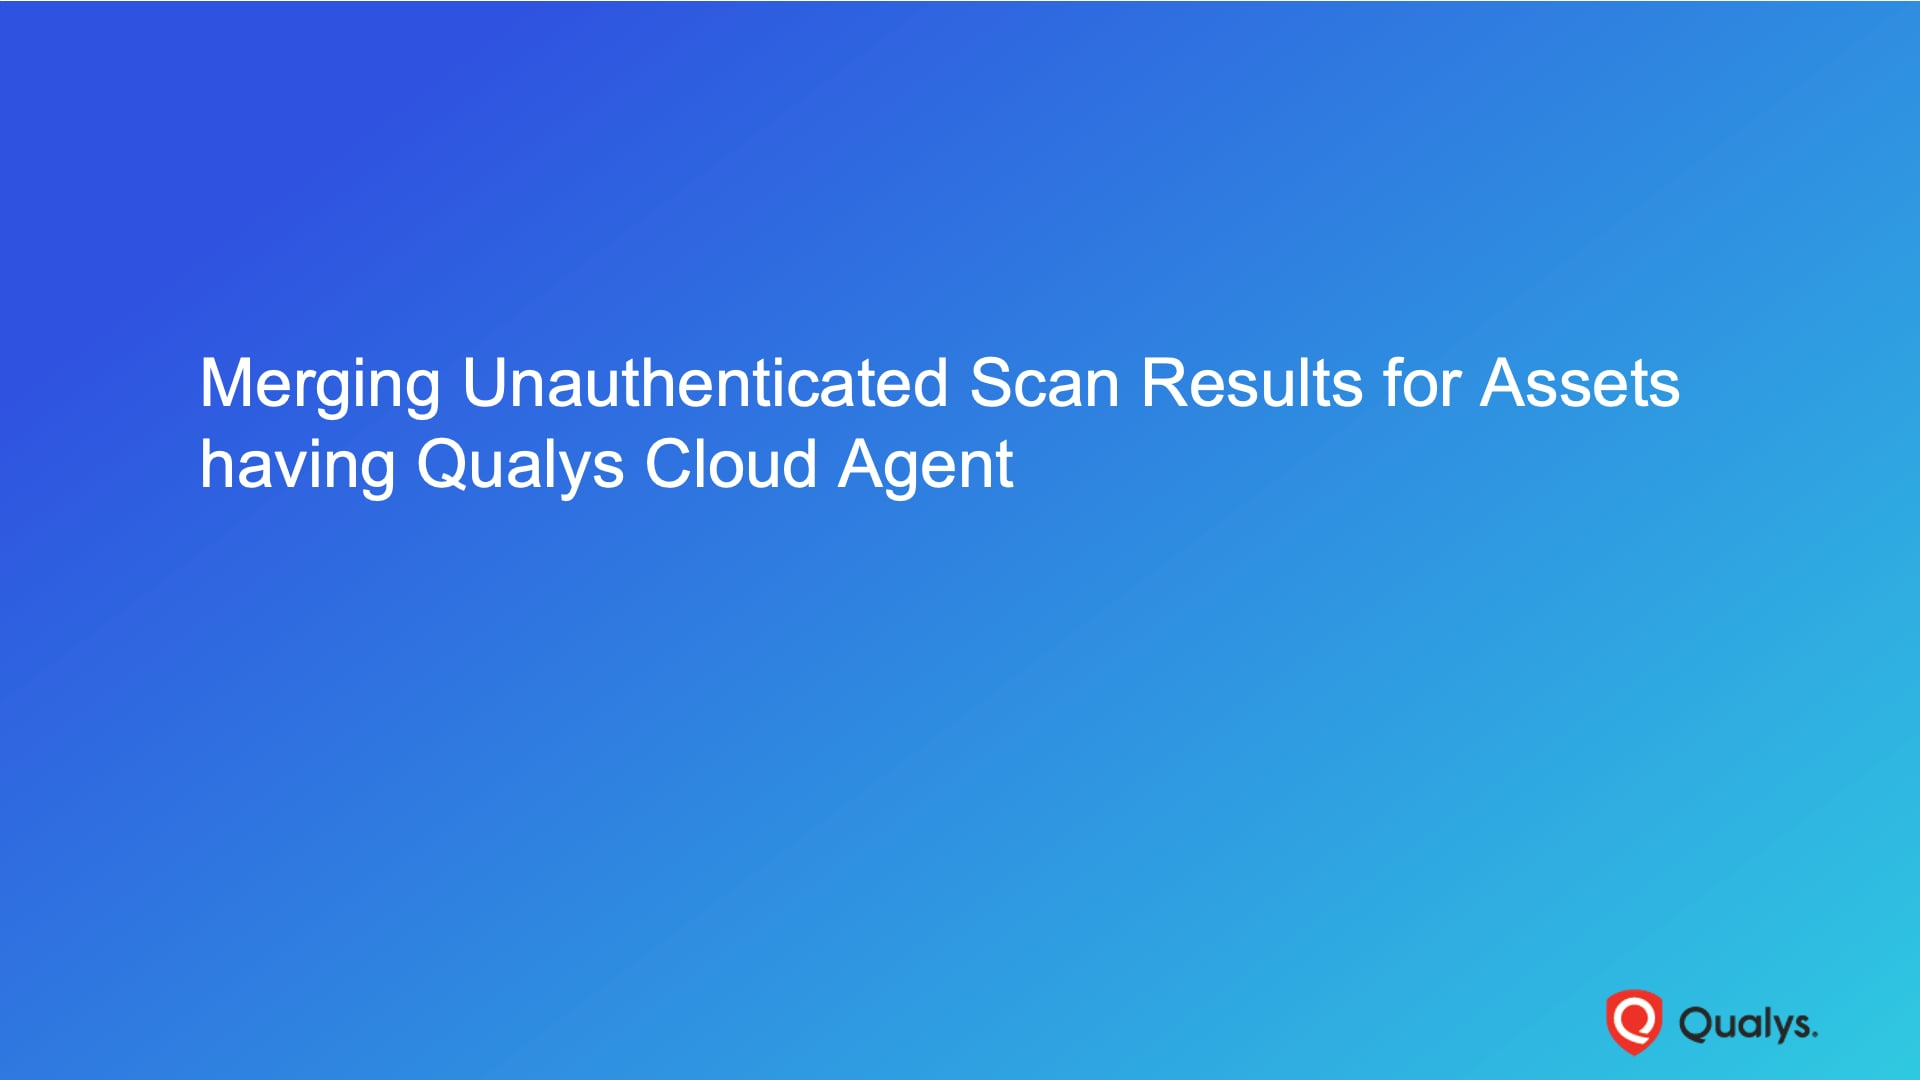 Merging Unauthenticated Scan Results for Assets having Qualys Cloud Agent